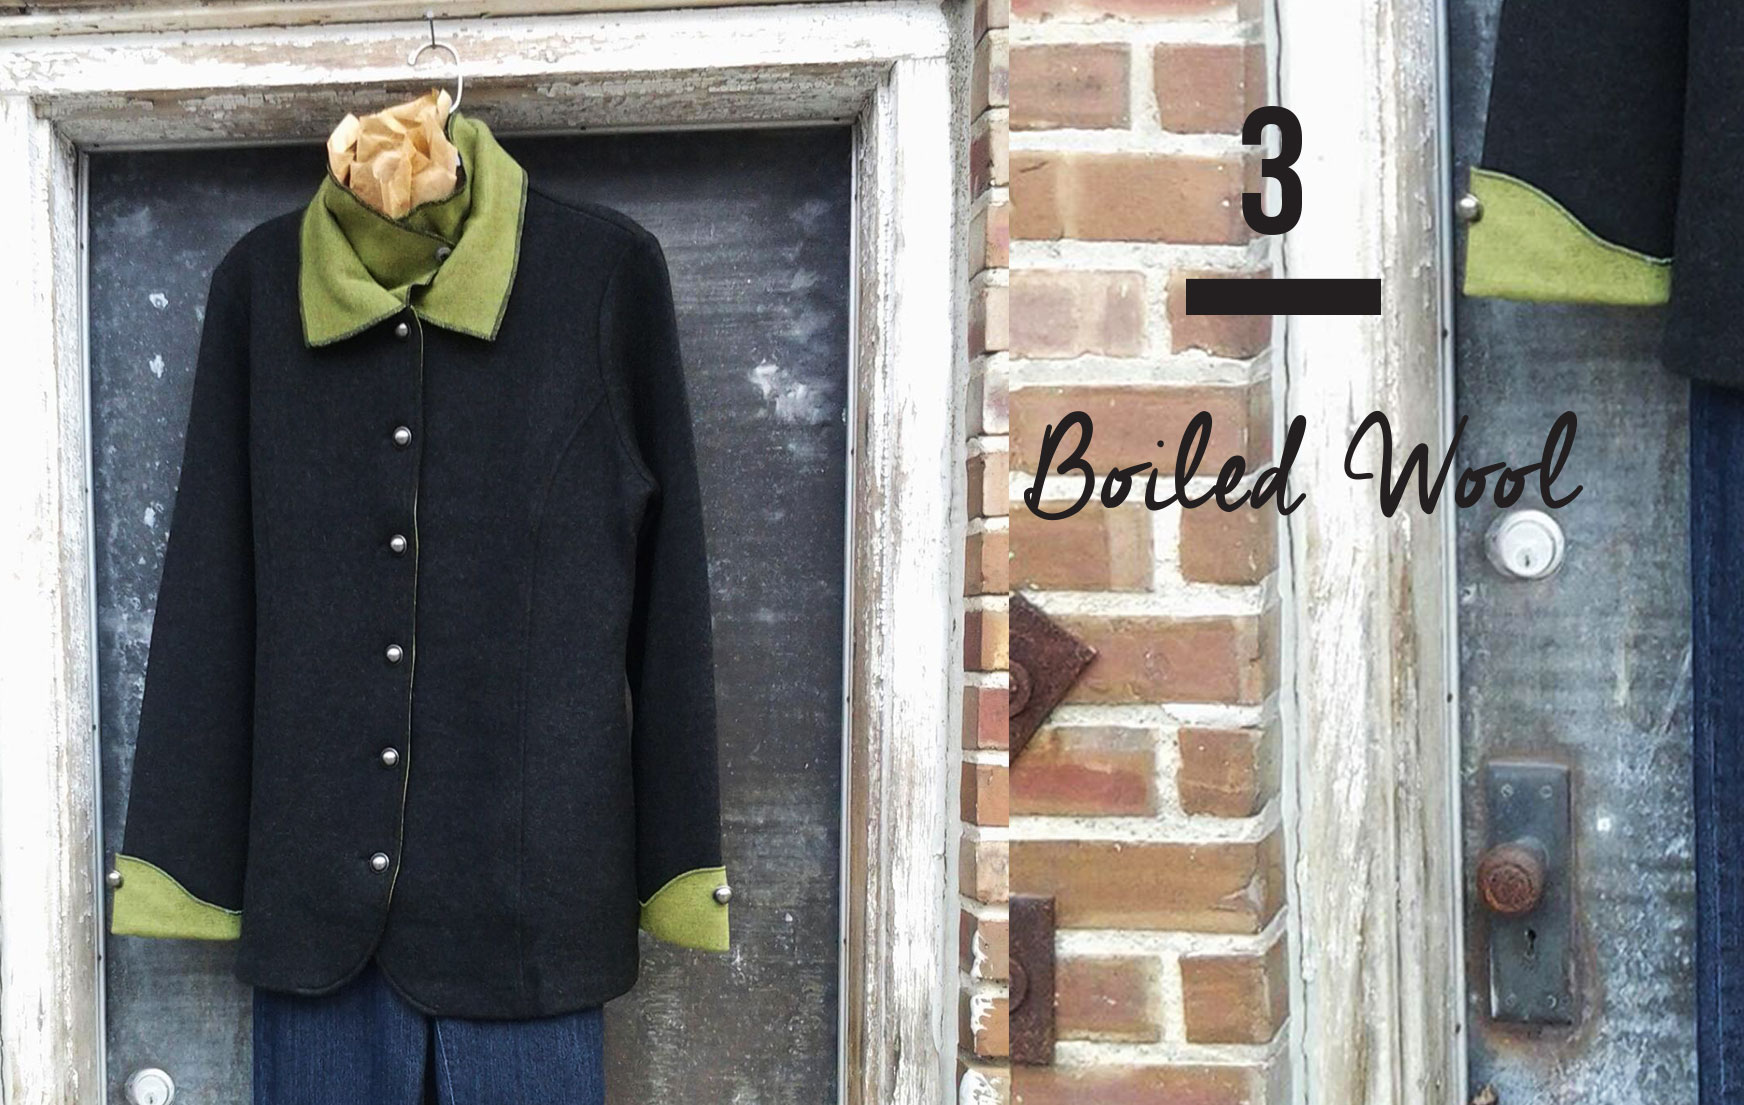 BOILED WOOL Icelandic's last delivery of Fall 2014 boiled wool jackets and vests have just arrived! Featured above is a charcoal stroller with green trim.